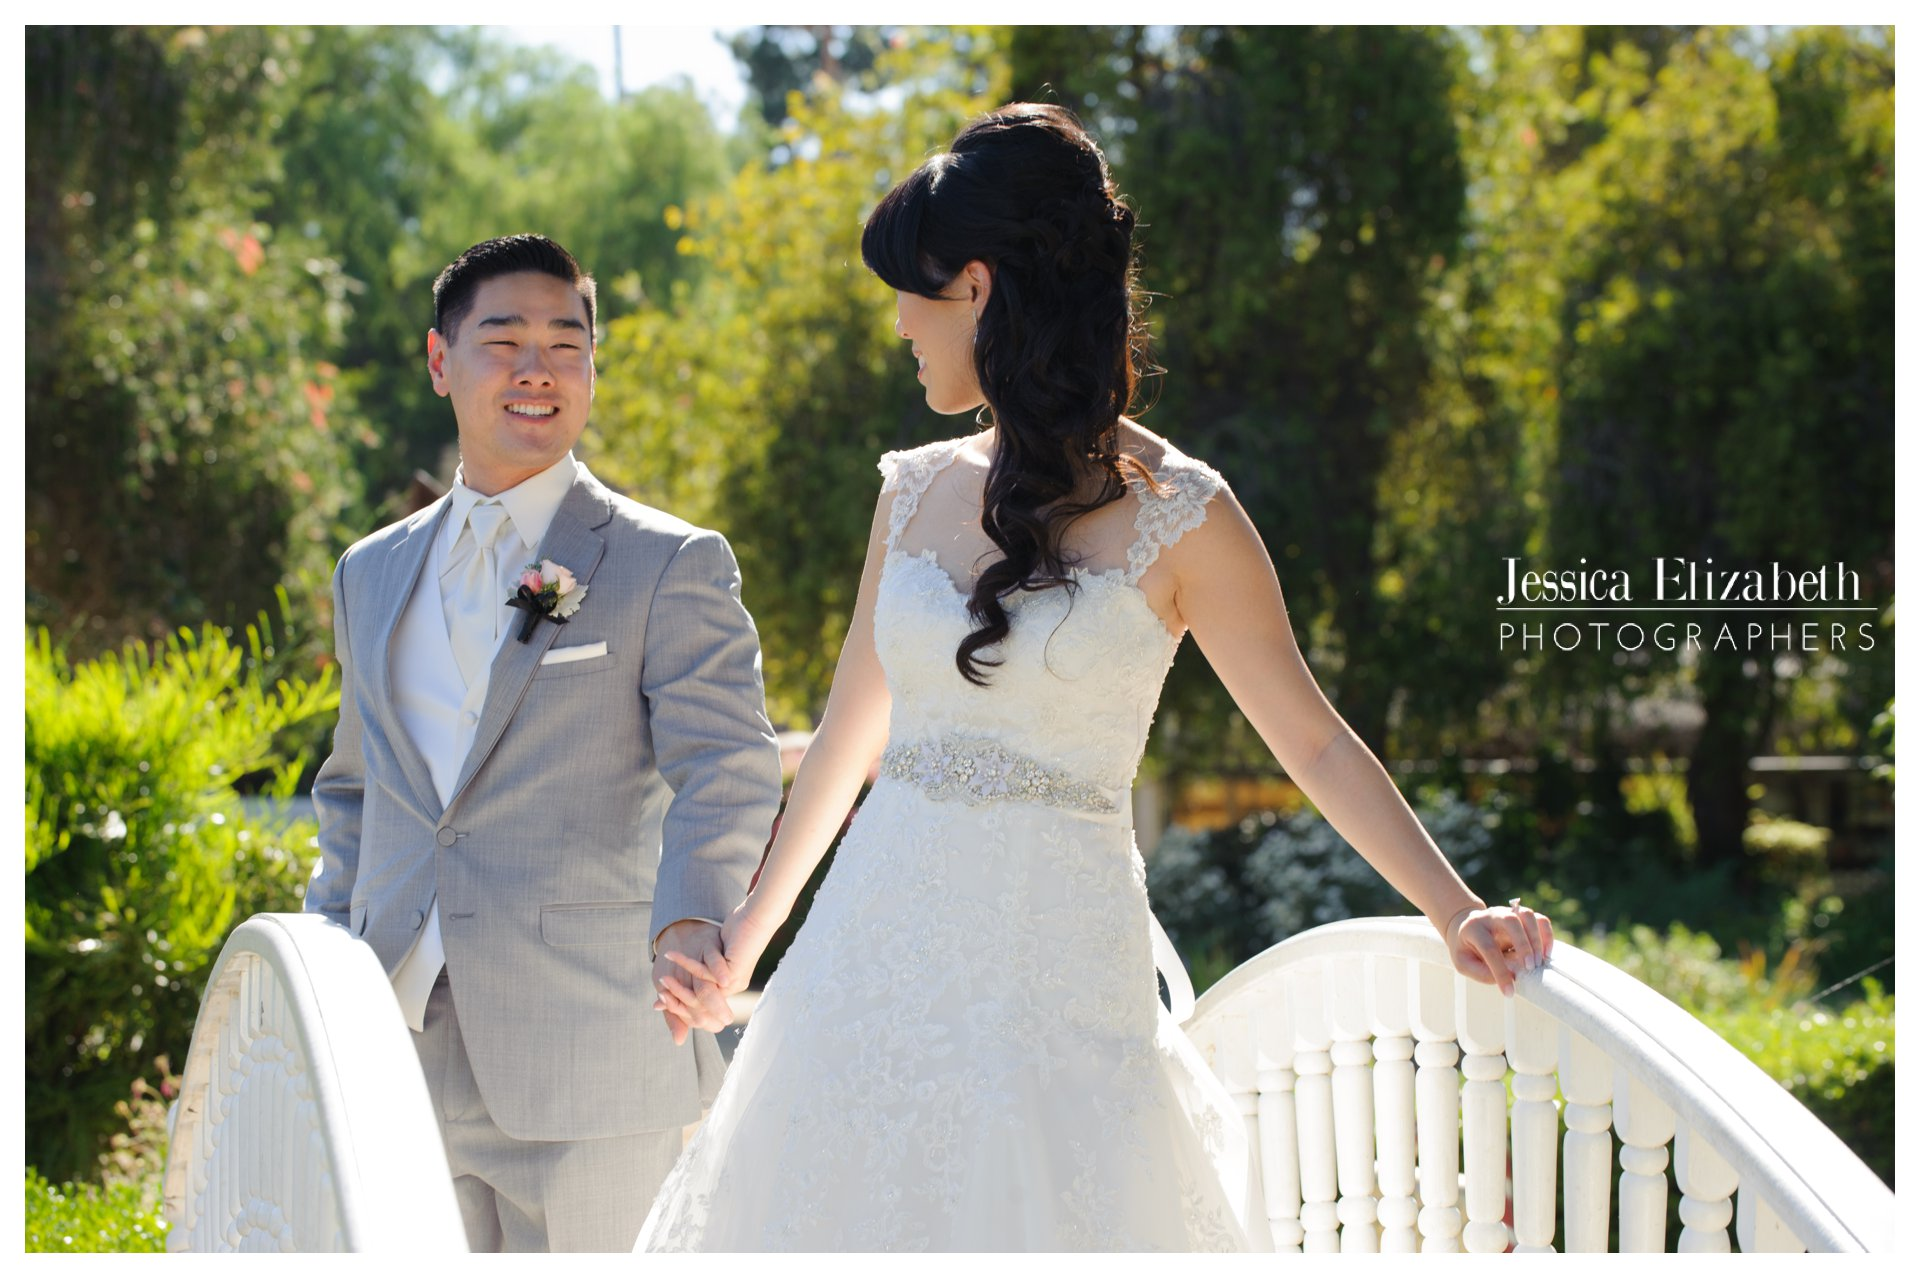 11-South-Coast-Botanic-Garden-Palos-Verdes-Wedding-Photography-by-Jessica-Elizabeth.jpg